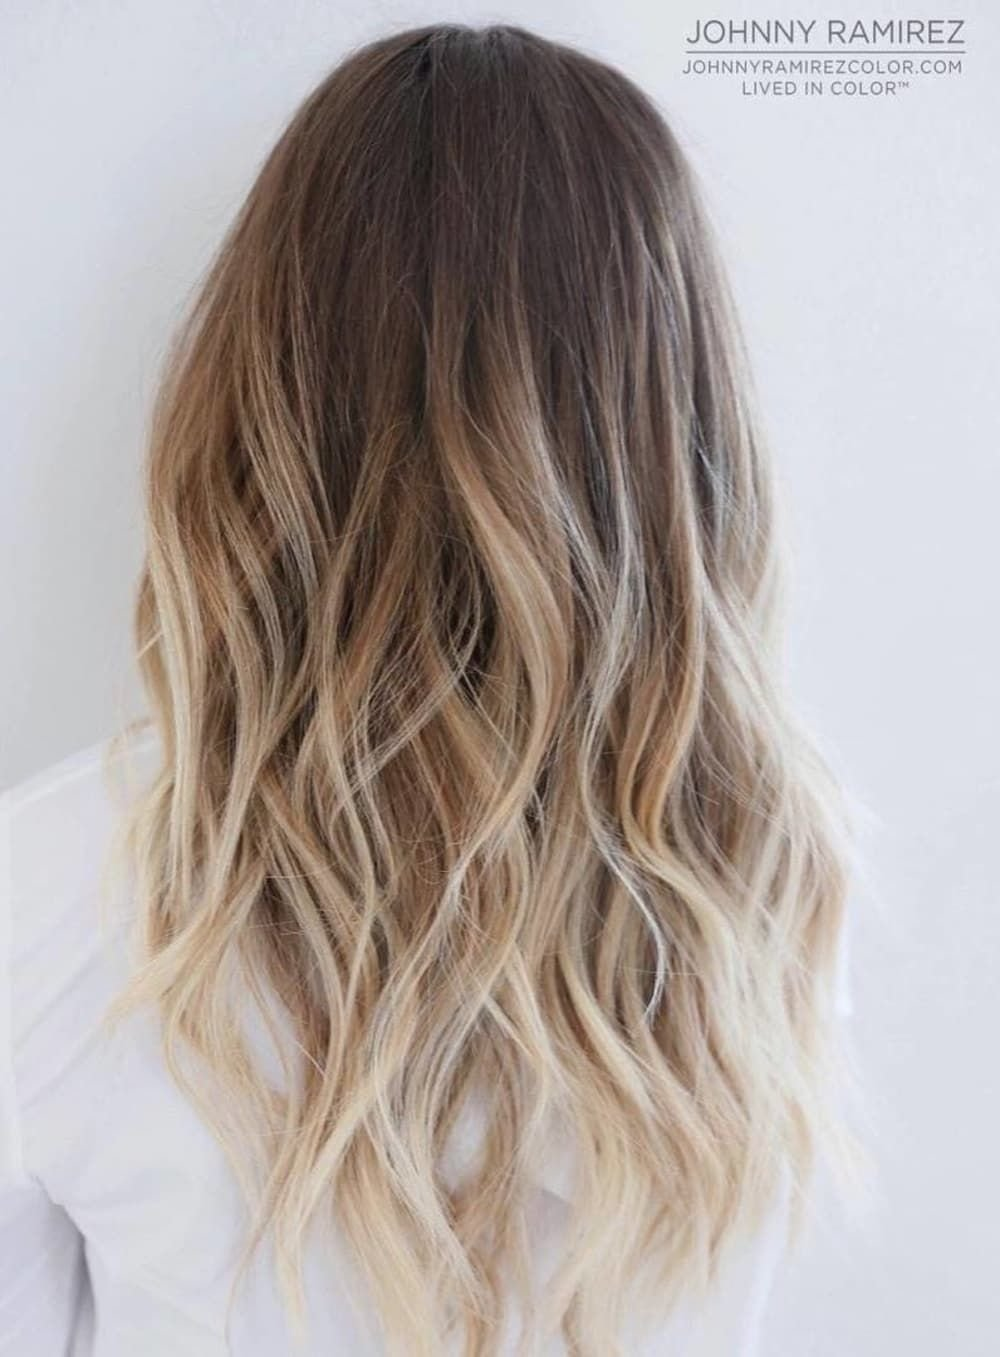 70 flattering balayage hair color ideas for 2018 | blonde ombre hair